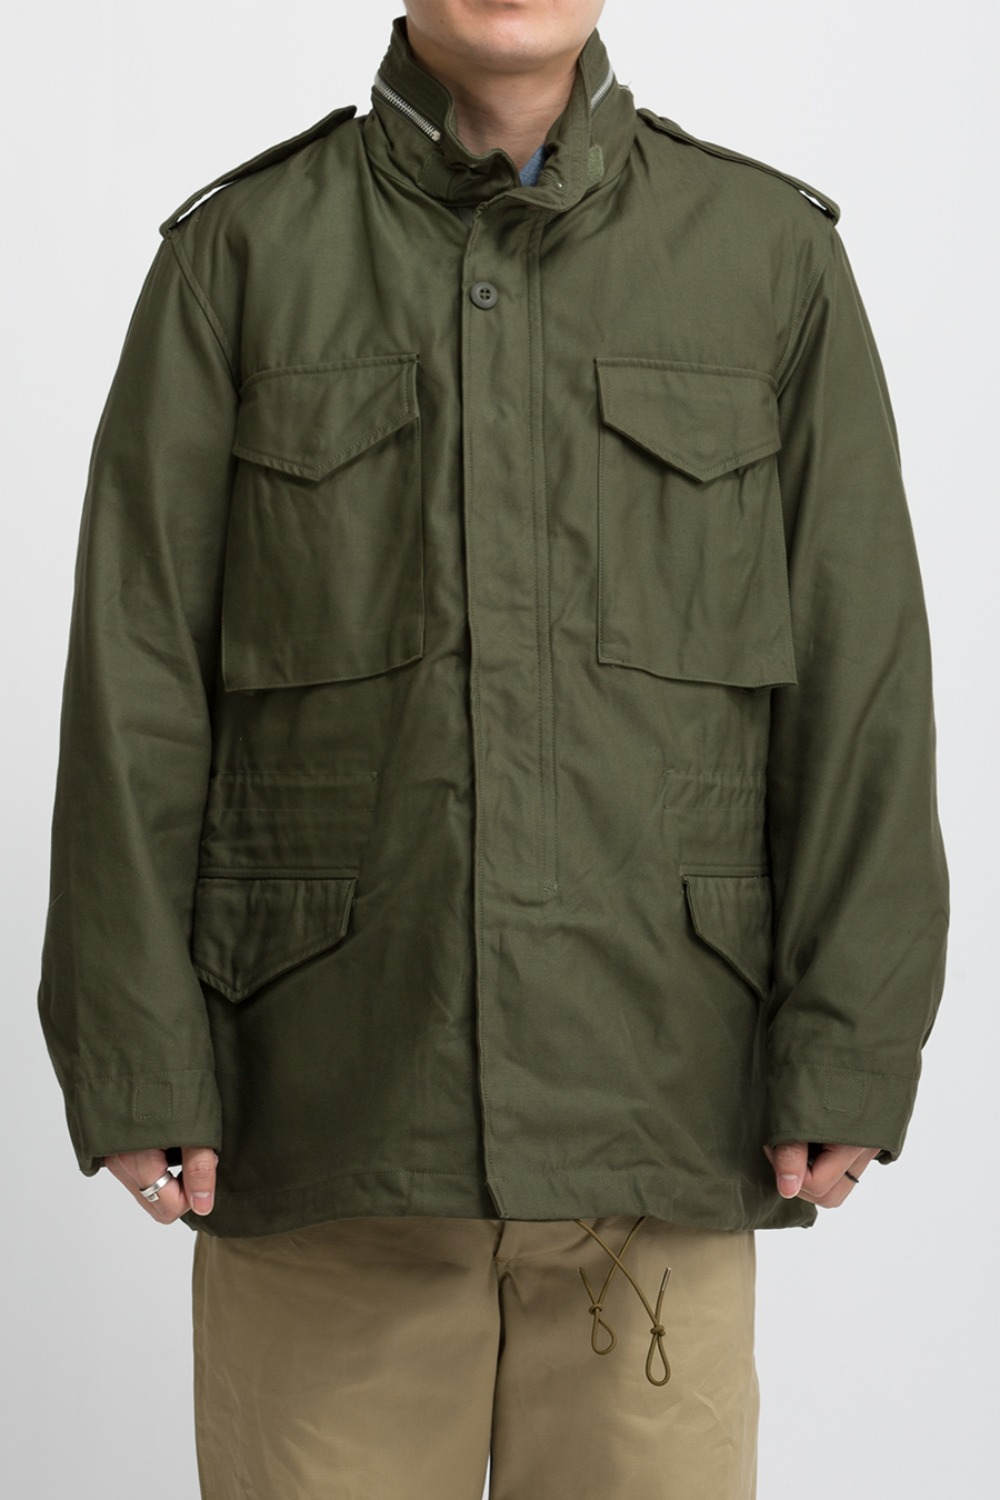 M-65 FIELD JACKET OLIVE GREEN 107